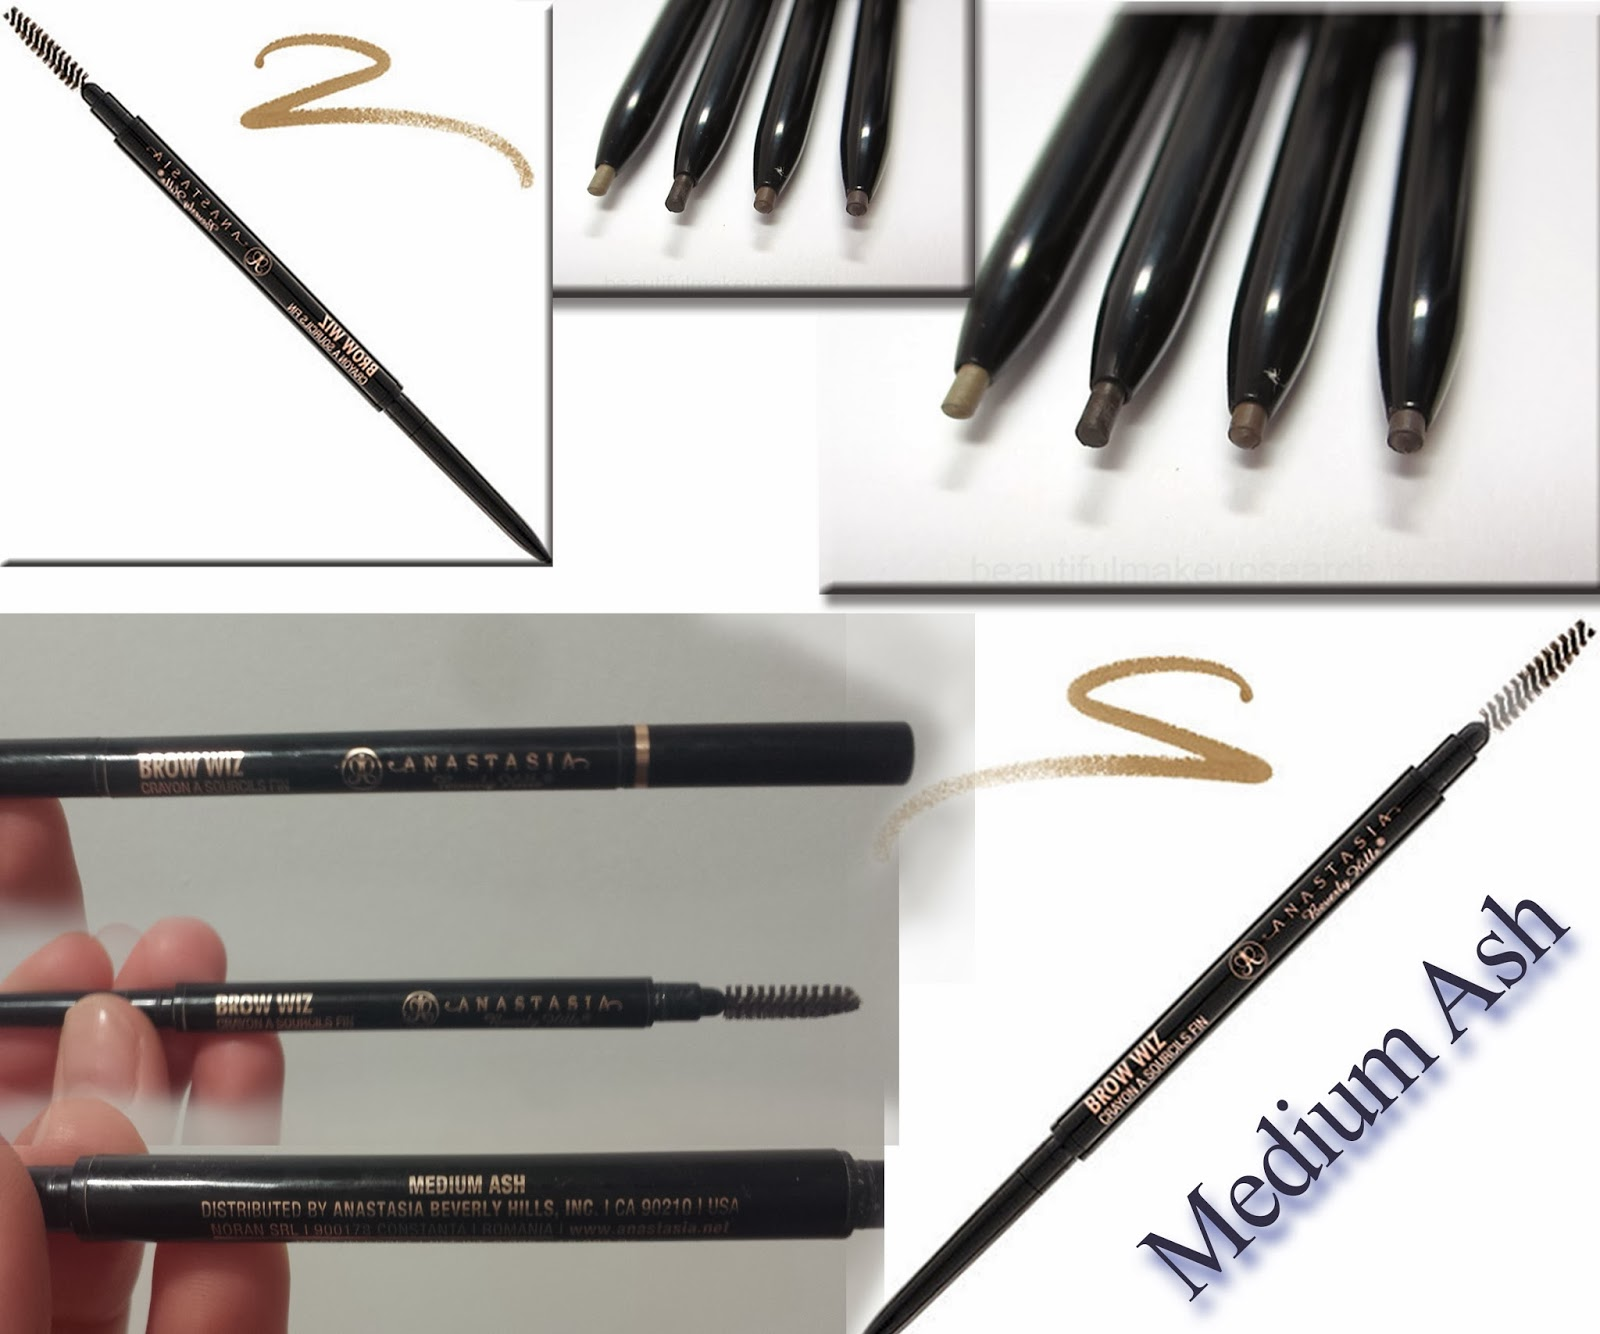 Anastasia Eyebrow Wiz Review